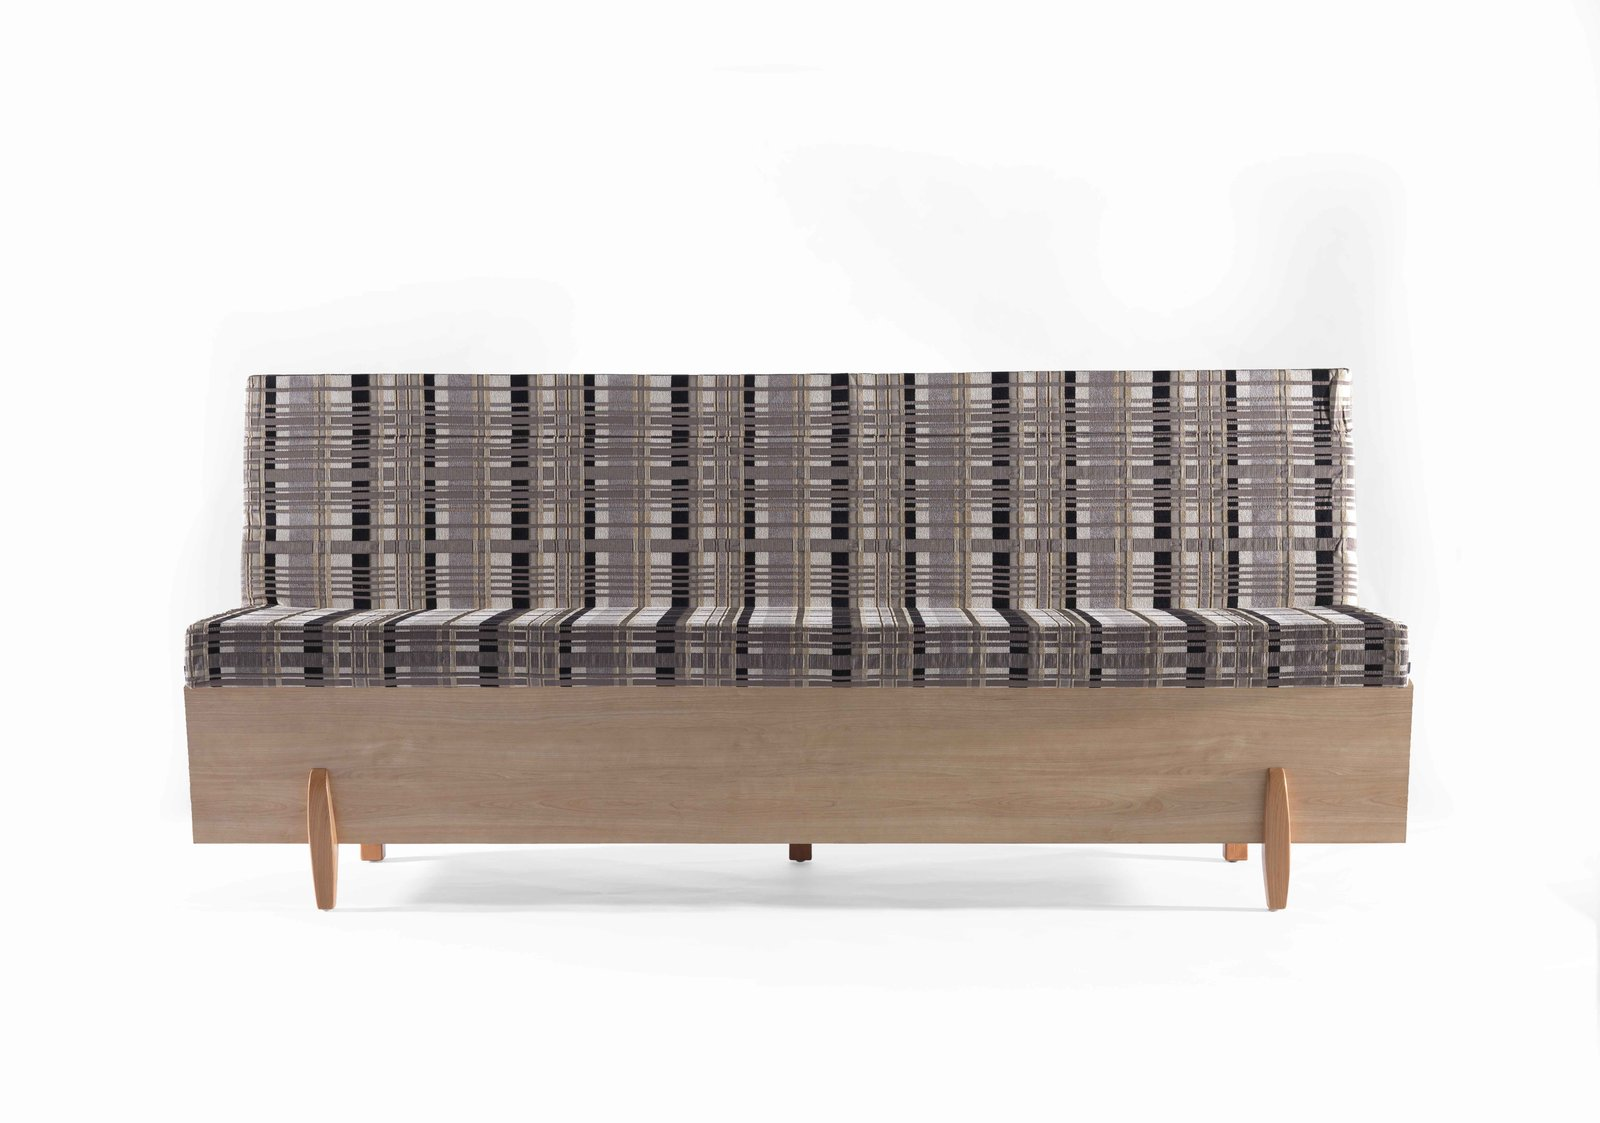 """""""The Safsalit was invented by a Jewish immigrant from Romania named Moshe Pitaro, who worked as an upholsterer,"""" says Snyder. """"In 1962, he created his very first design: an intelligent and innovative sofa that could be converted into a bed, which responded to the practical needs of apartment life in Israel, where everyone lived in very modest quarters, with only fewer than 10% of all apartments having more than four rooms.""""  This is What Design Looked Like in Israel in 1965 by Allie Weiss"""